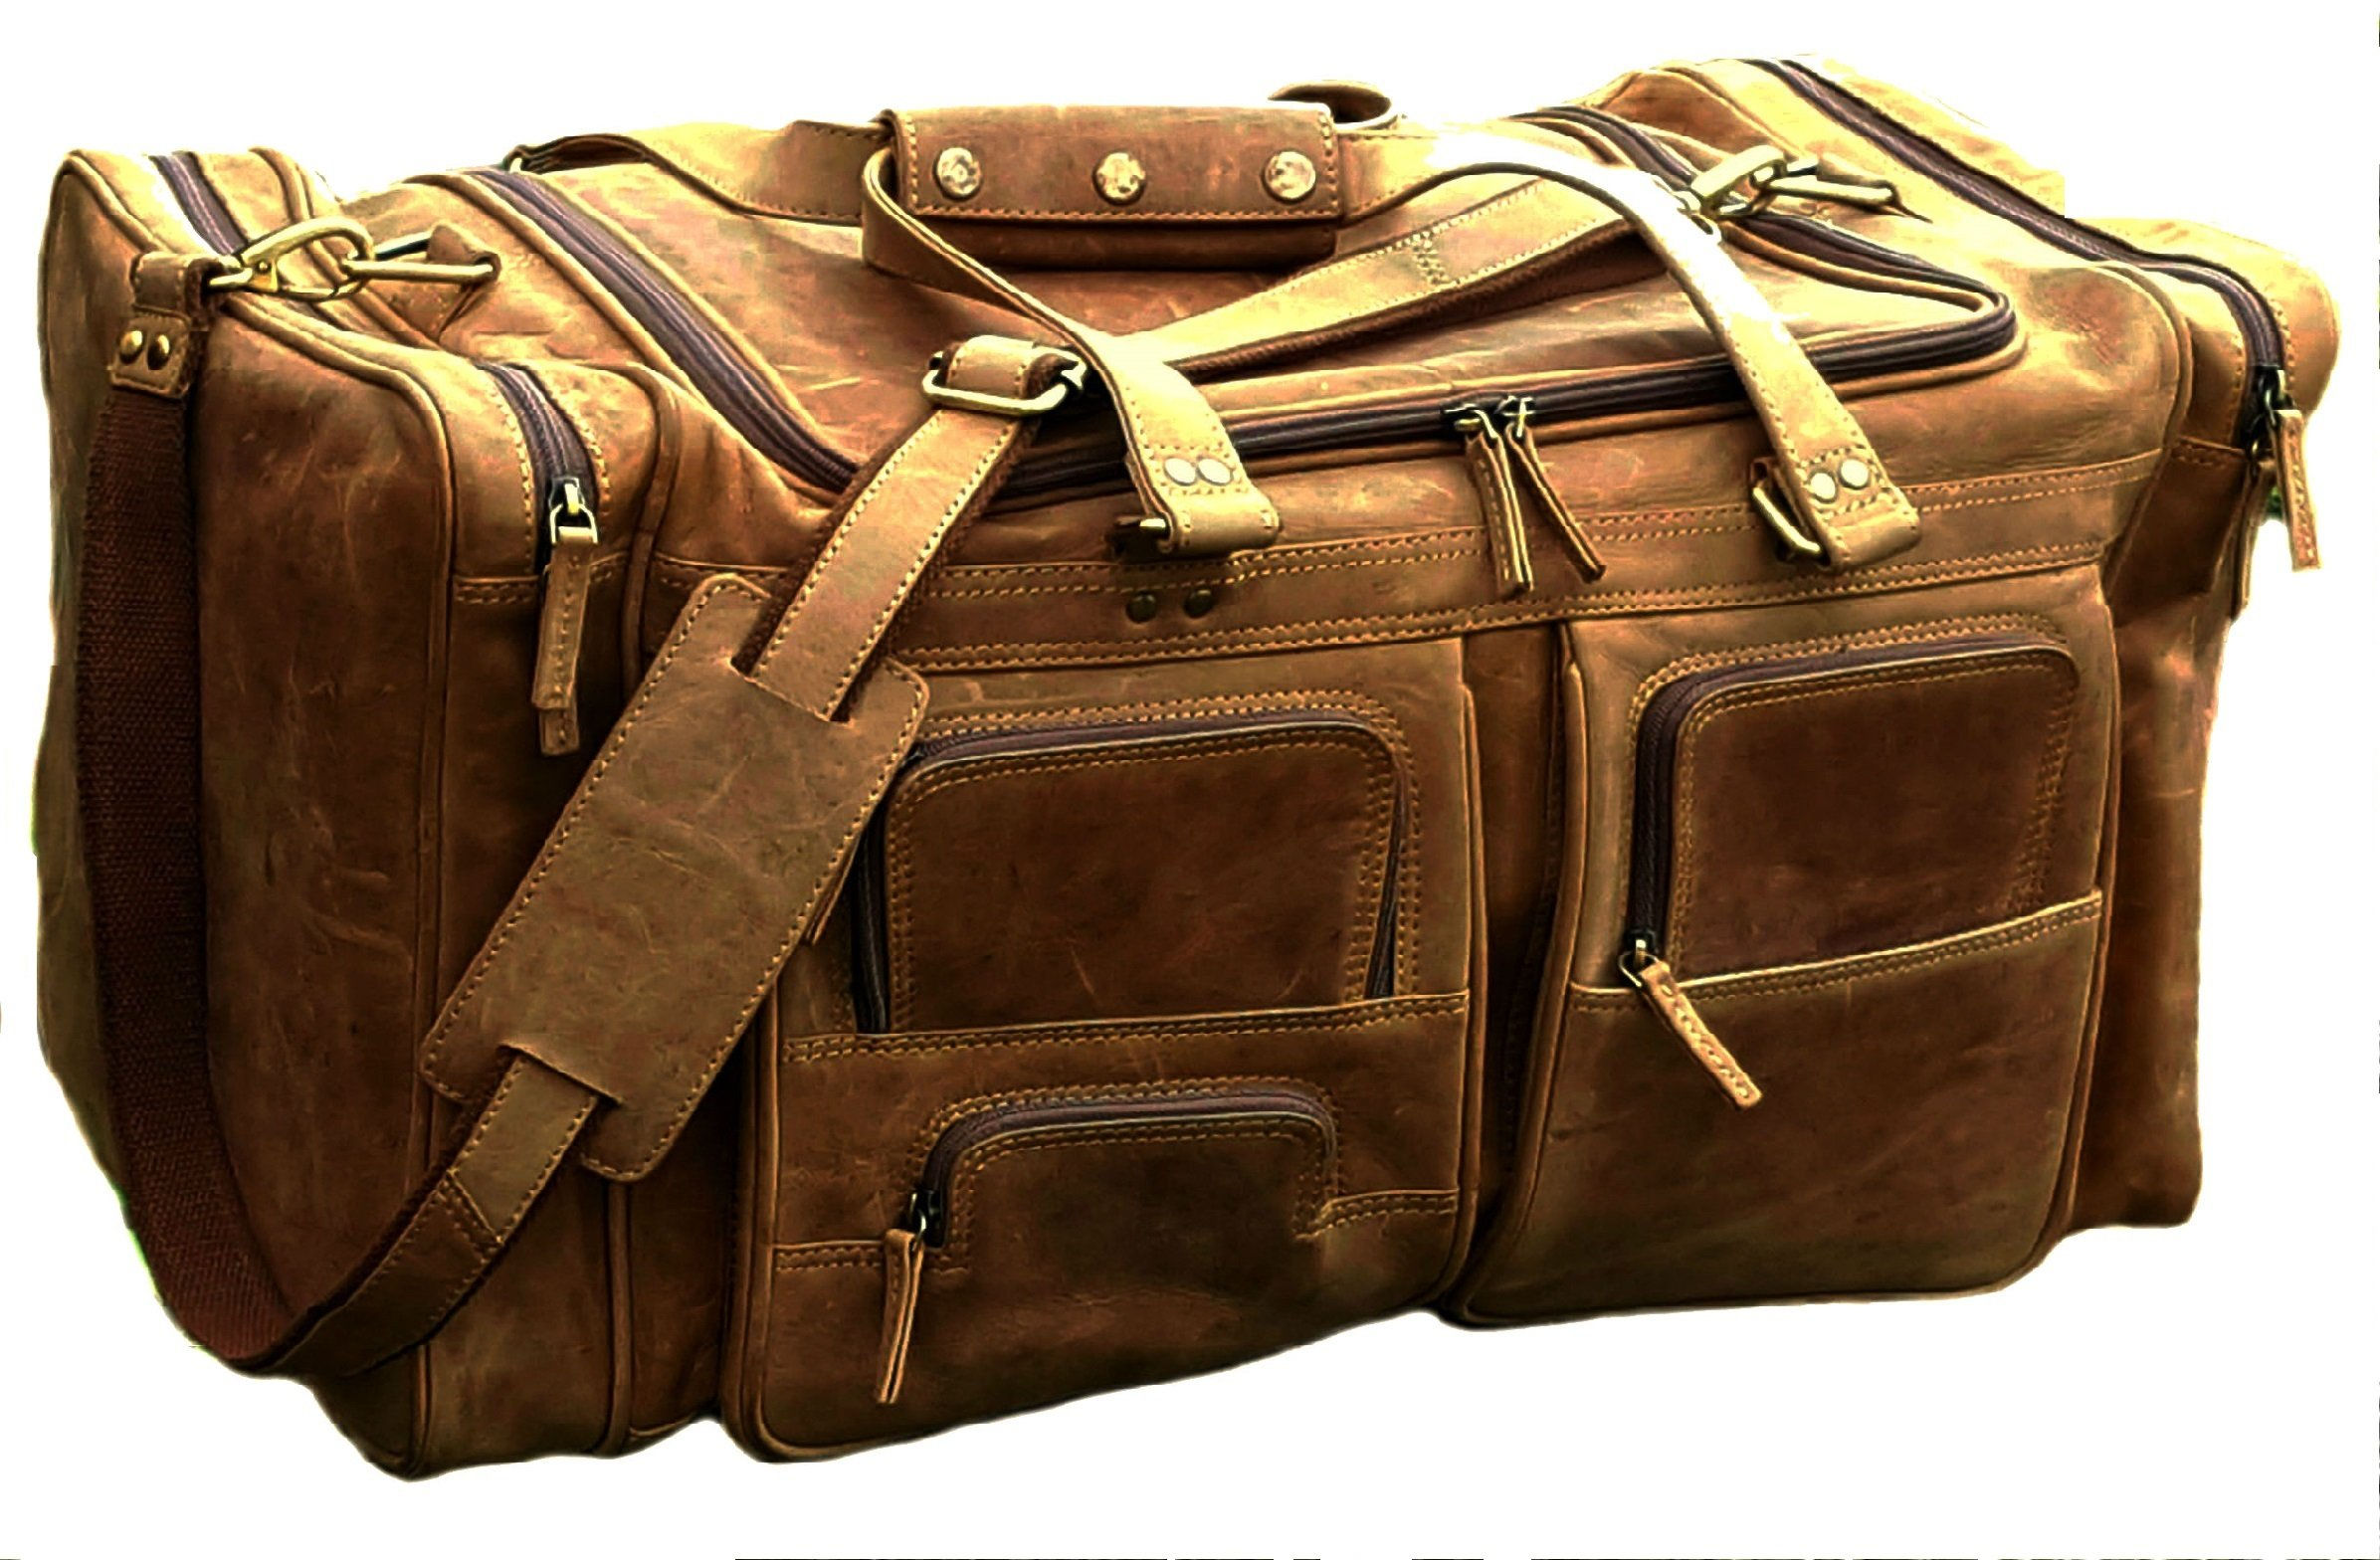 24 Inch Vintage Leather Travel Bag Gym Sports Overnight Weekend luggage Cabin Unisex duffel